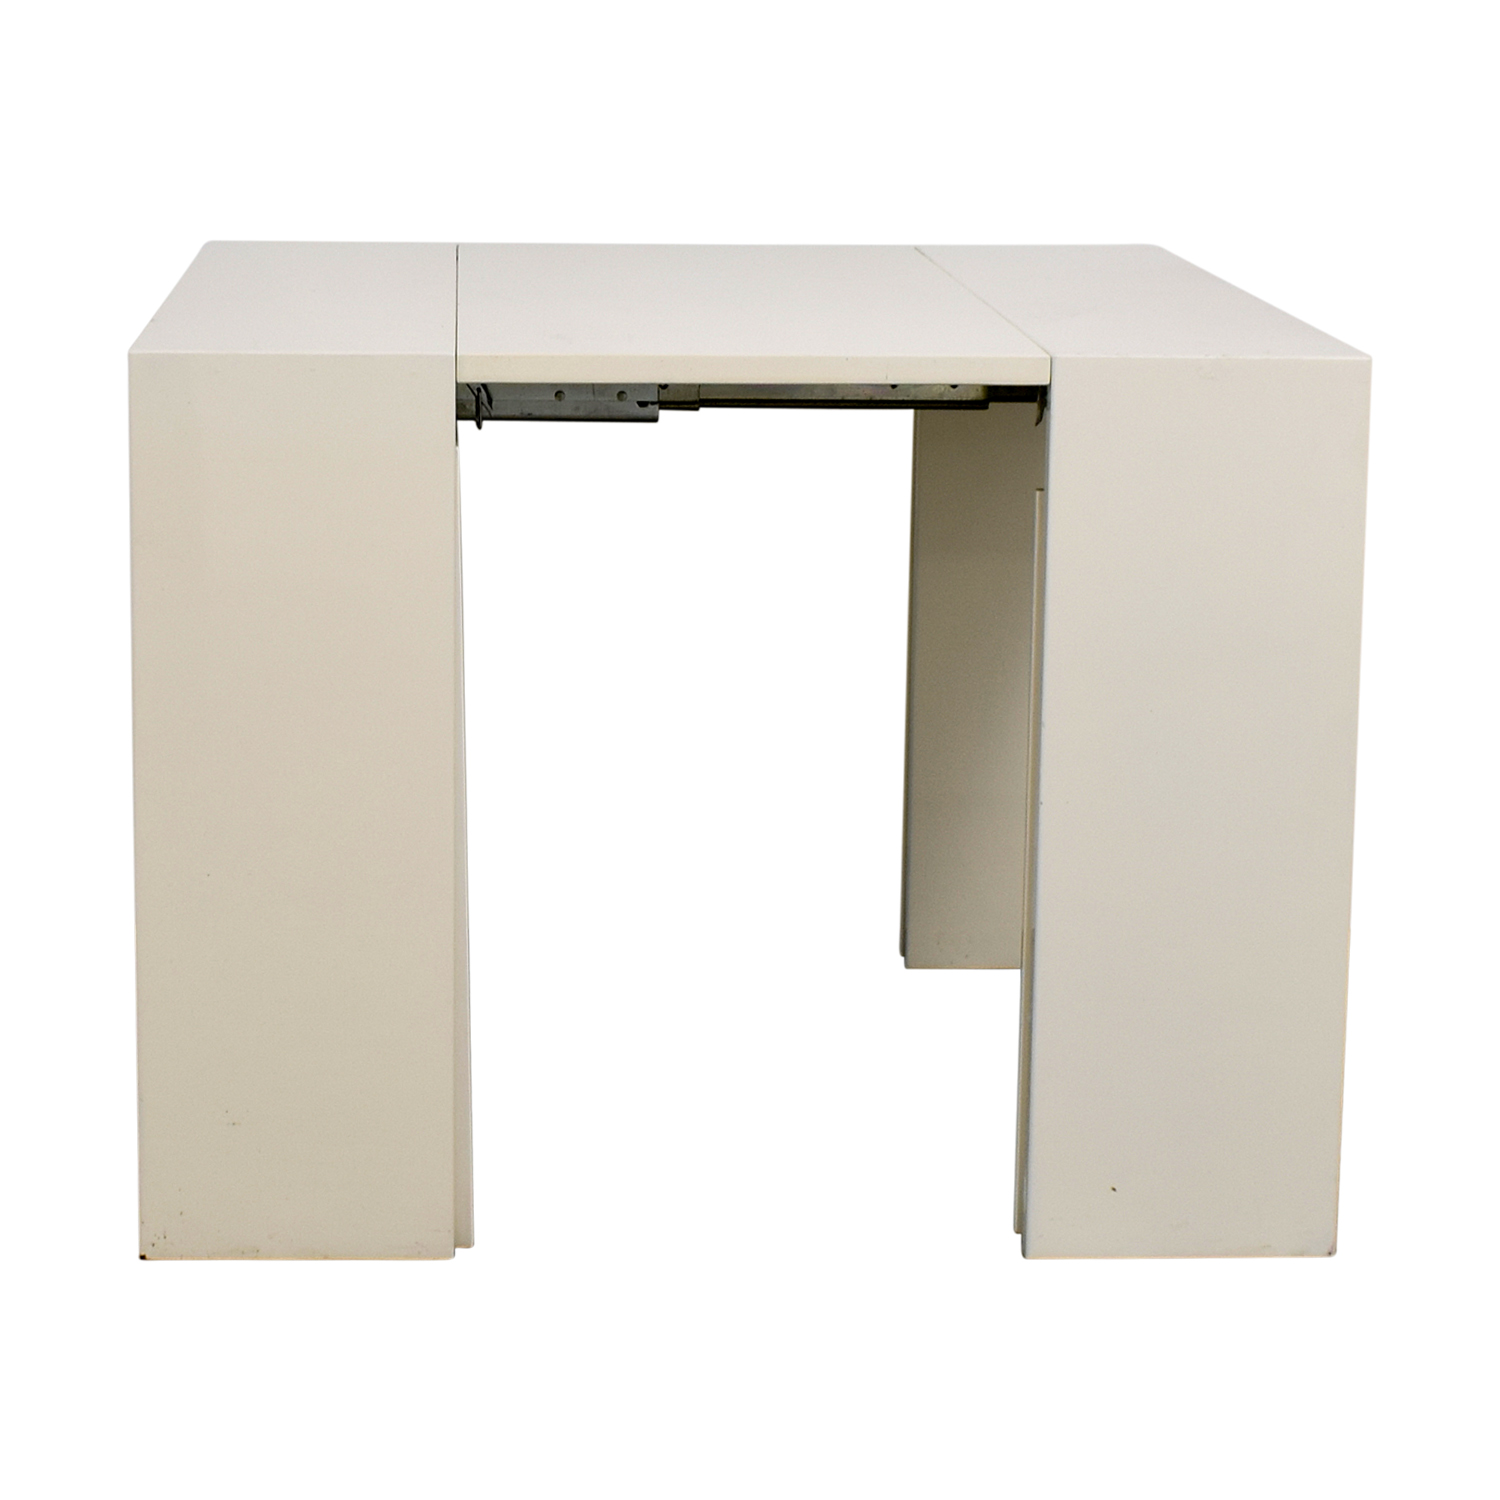 Modani Modani Extendable White and Creme Table discount